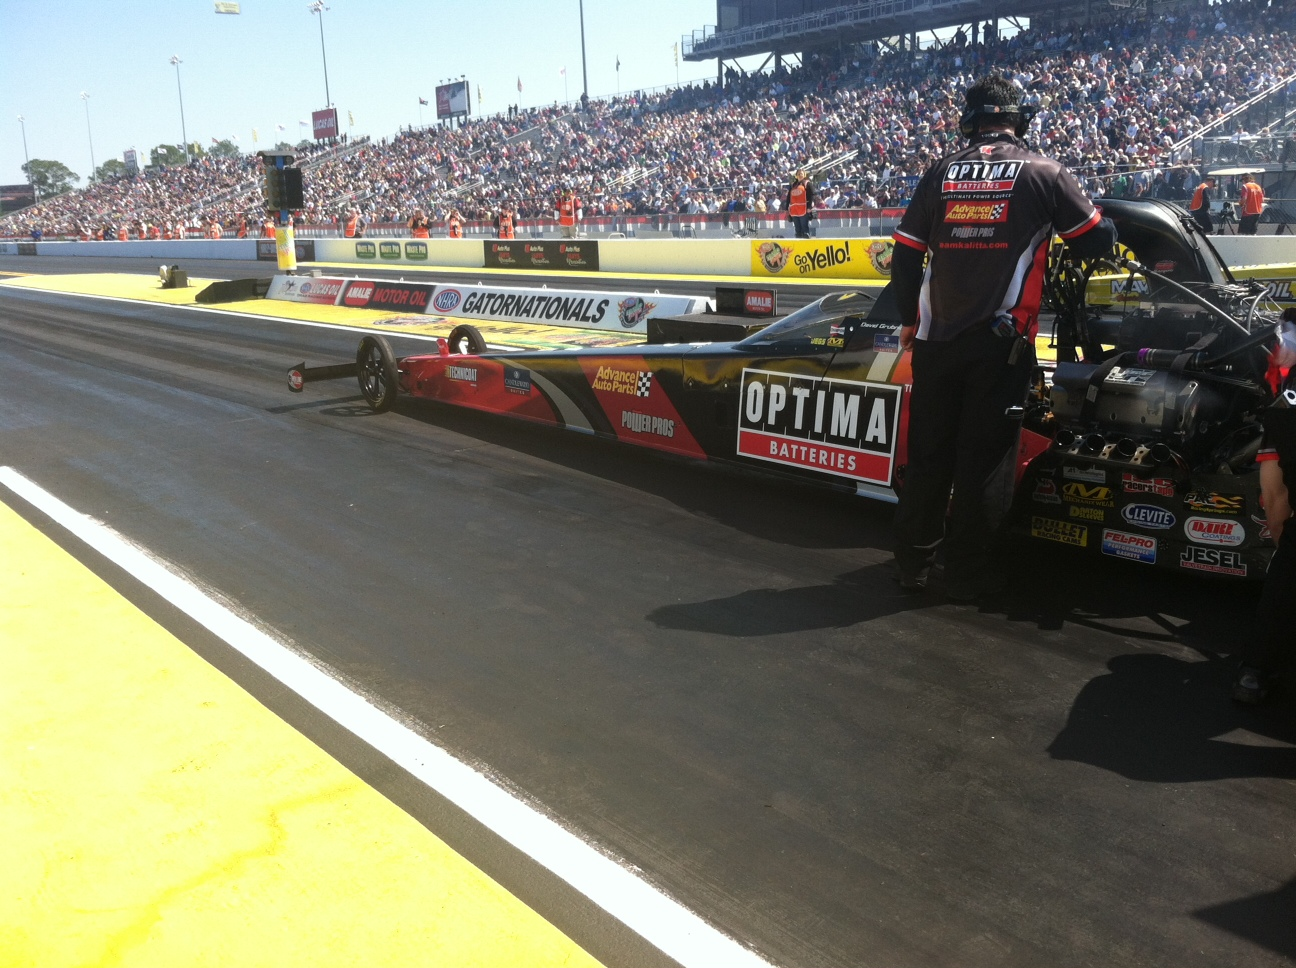 OPTIMA® Batteries to Race Again with Grubnic and Kalitta Motorsports in NHRA Mello Yello Drag Racing Series with Expanded Partnership with Advance Auto Parts